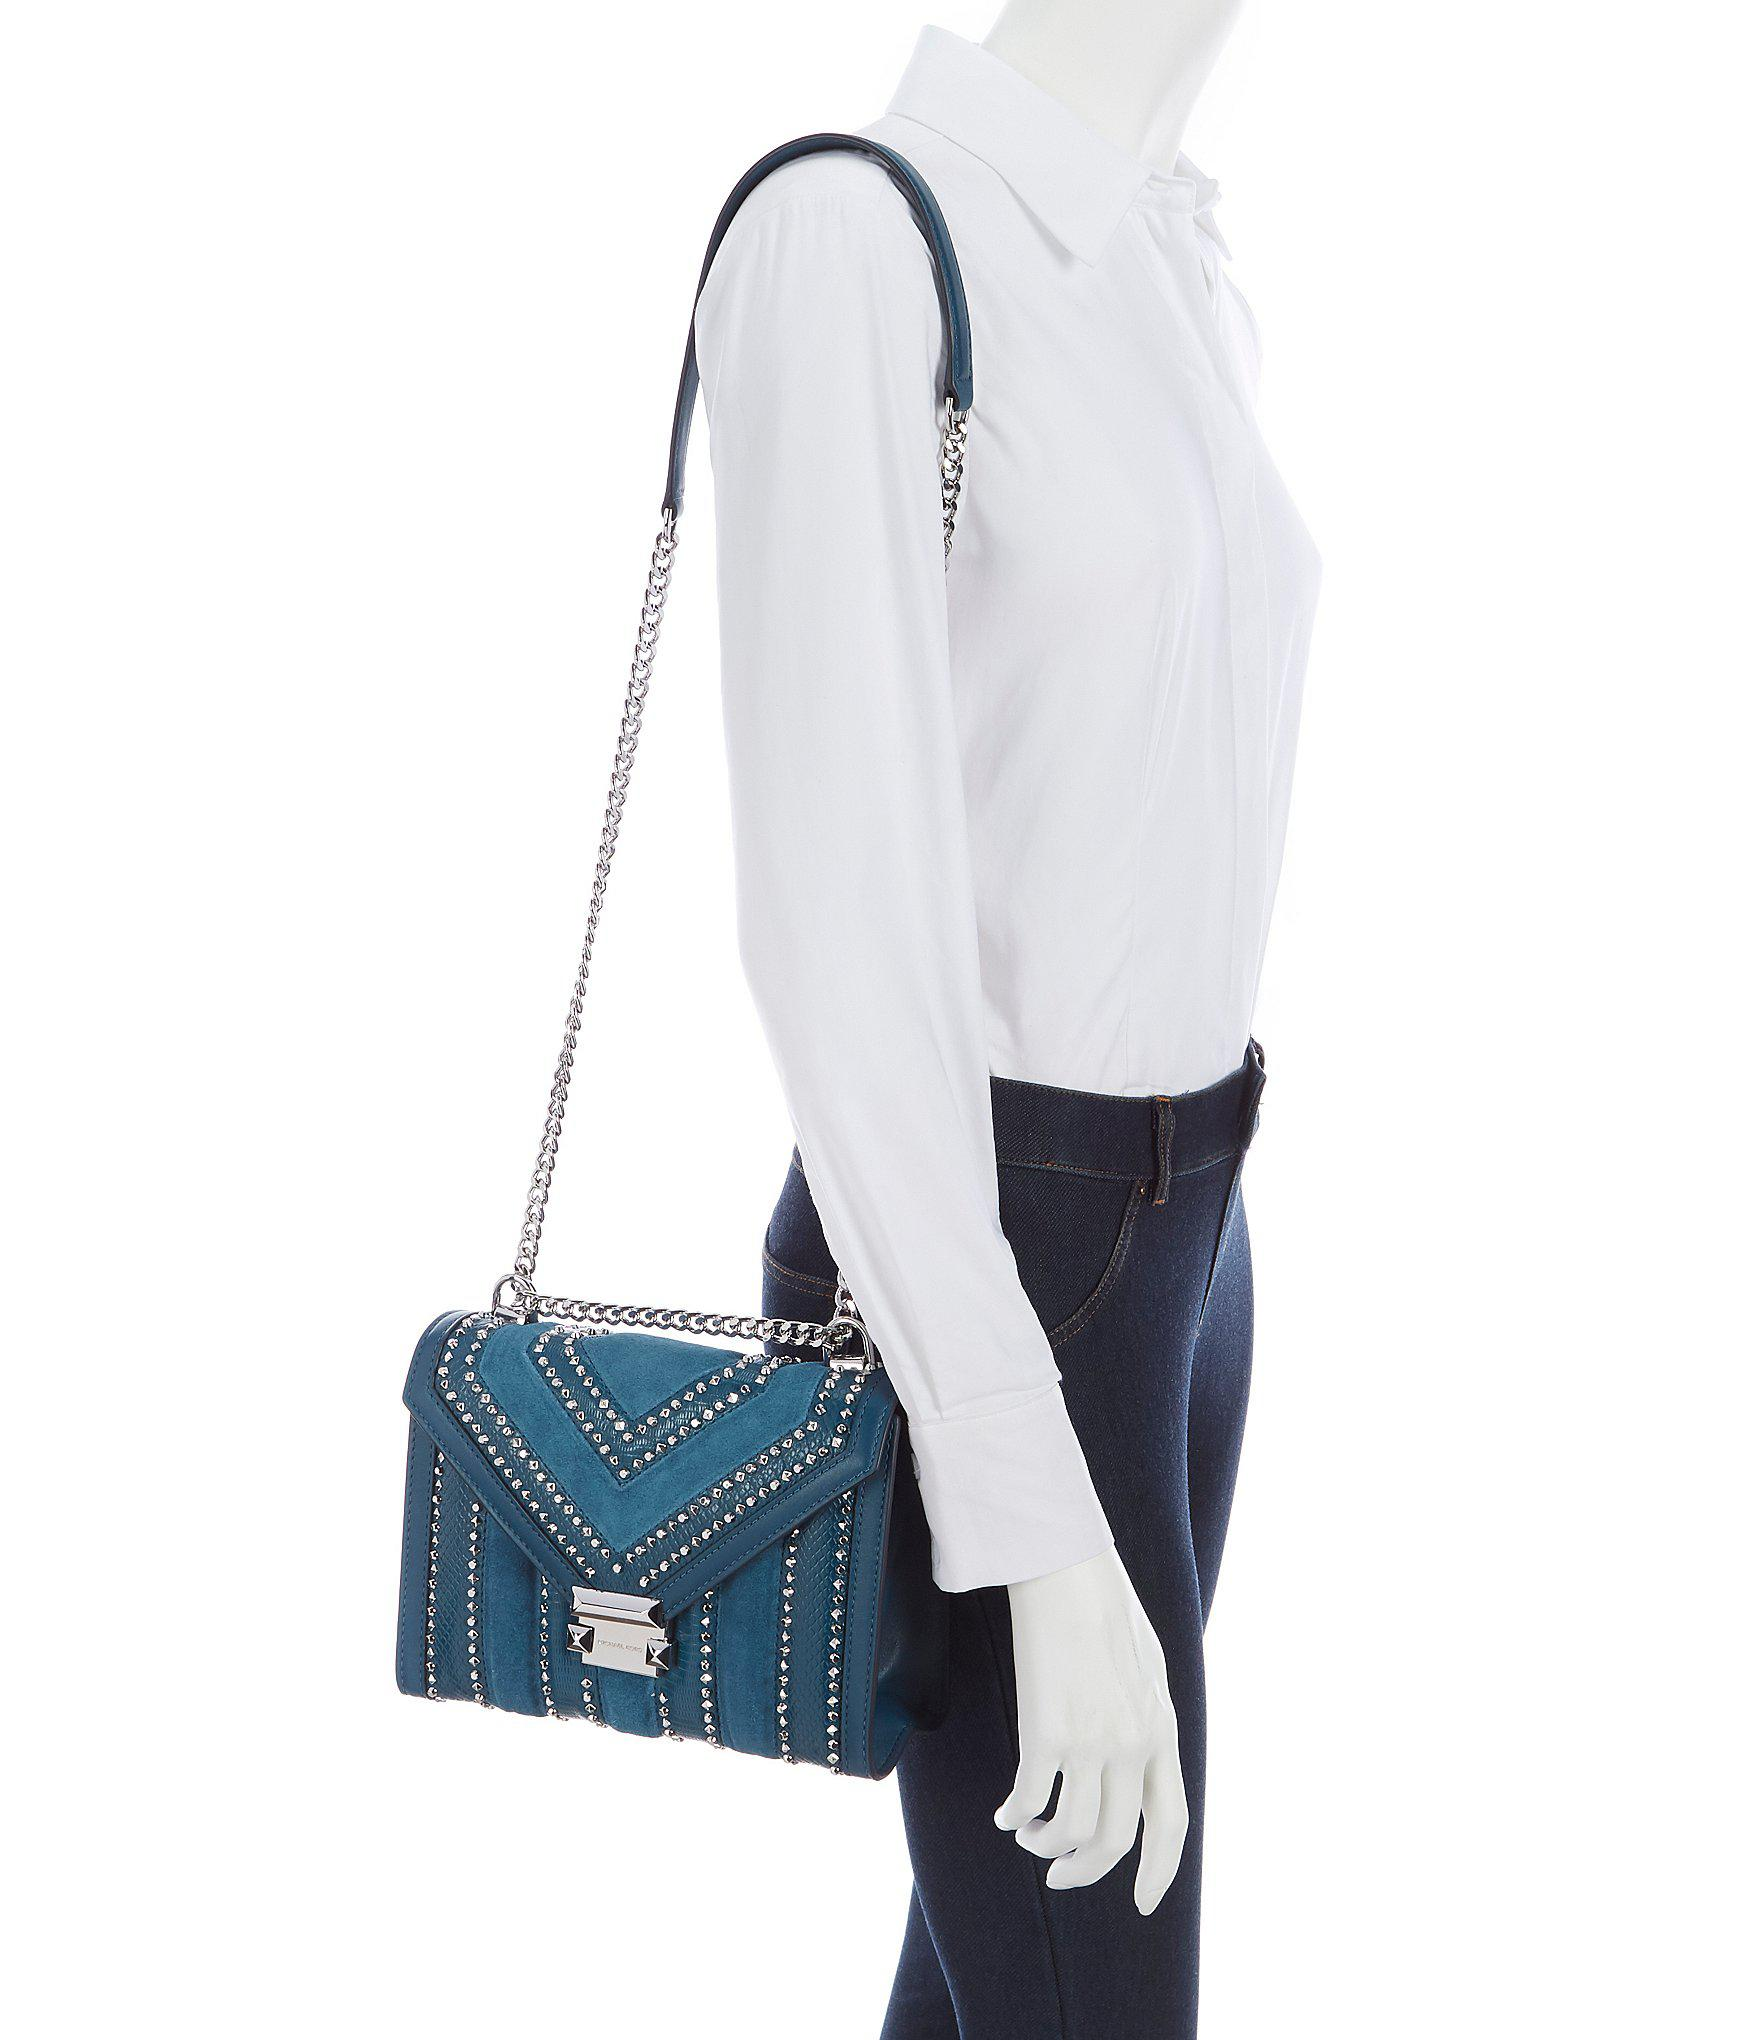 Lyst - MICHAEL Michael Kors Whitney Suede Studded Shoulder Bag in Blue 180e8e9360918